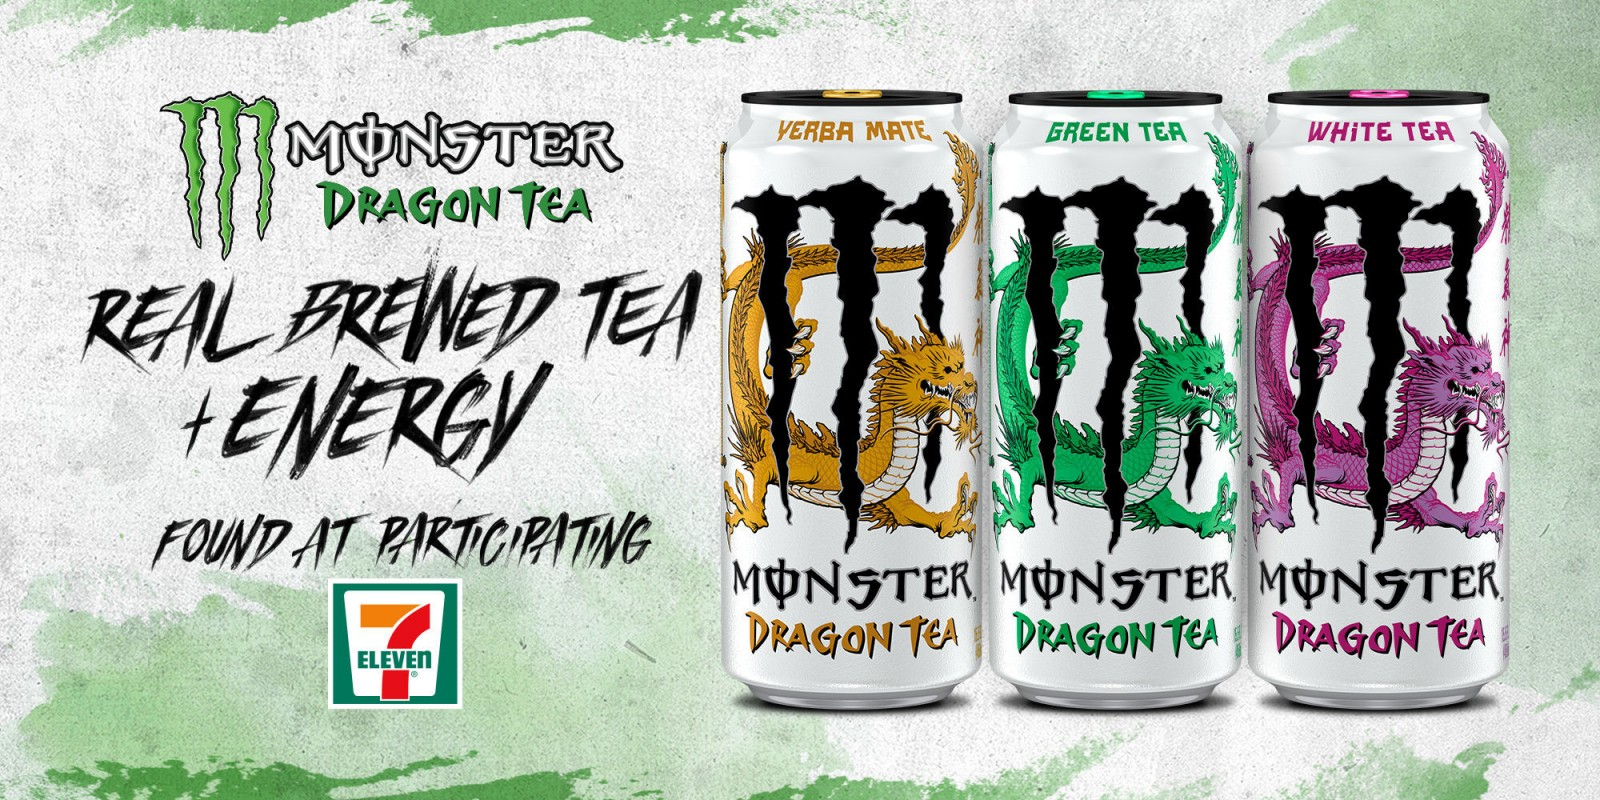 Dragon Tea 7/11 Promo